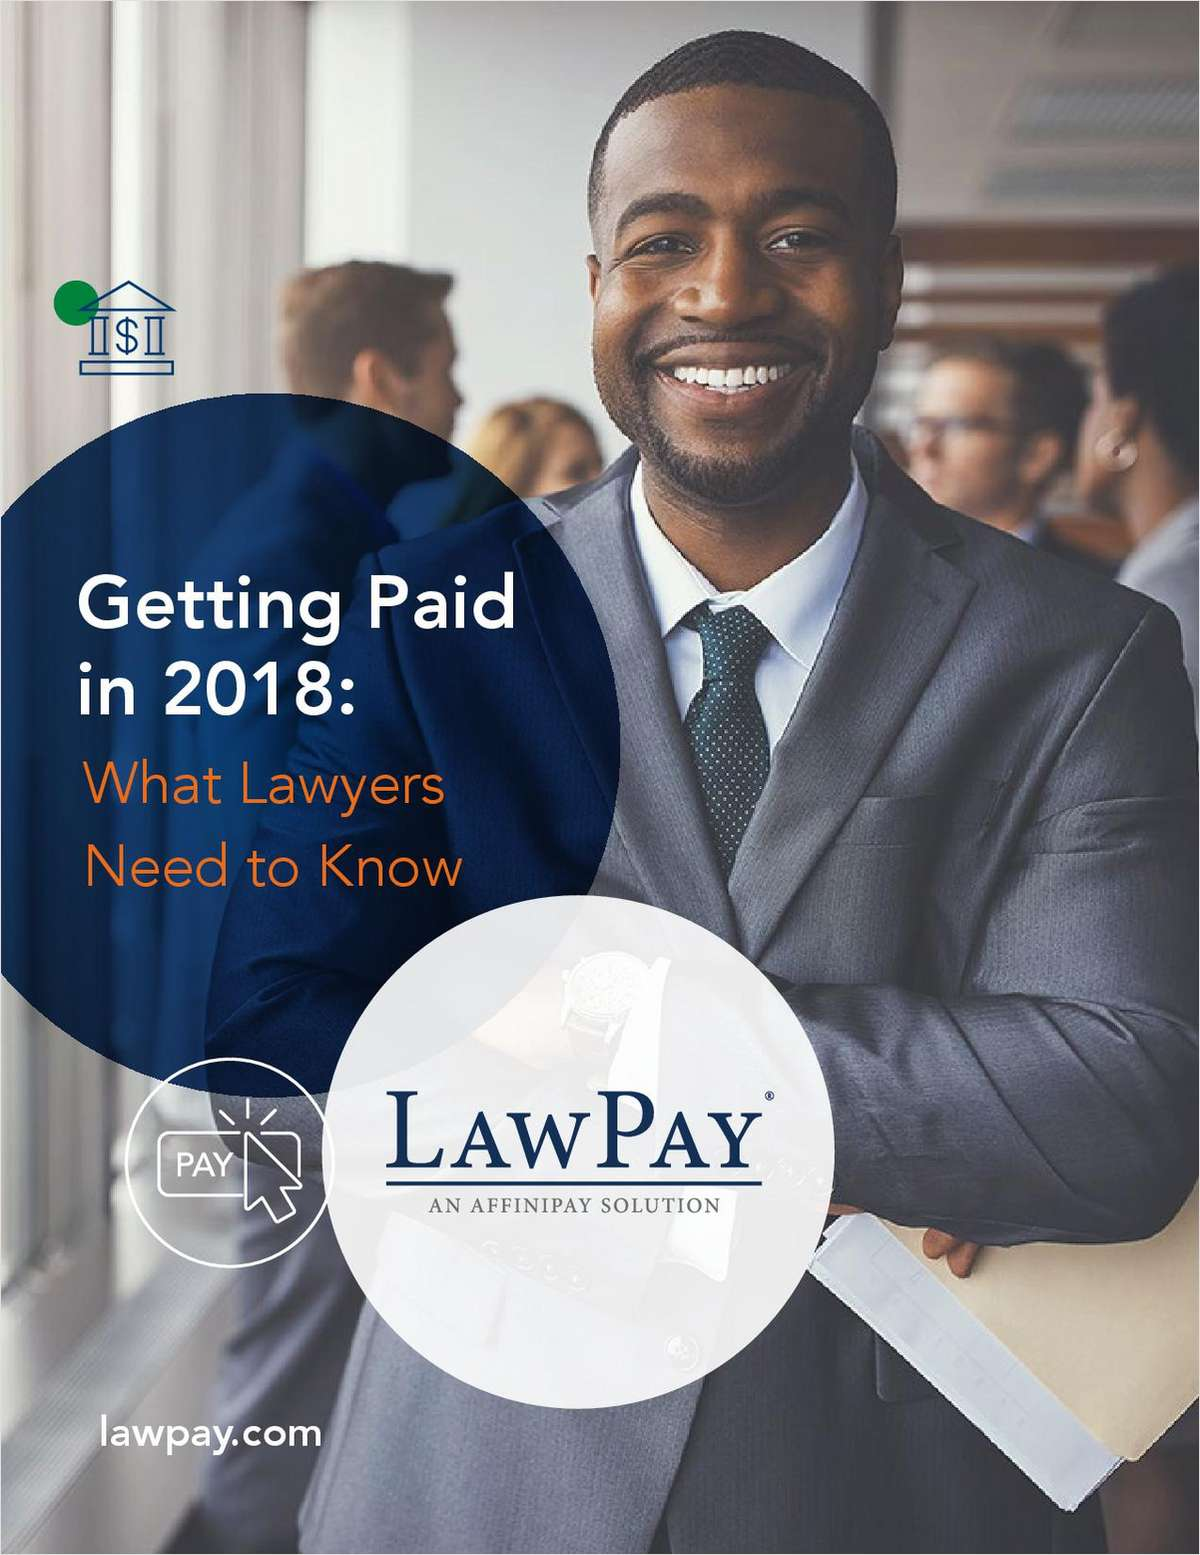 Getting Paid in 2018: What Lawyers Need to Know